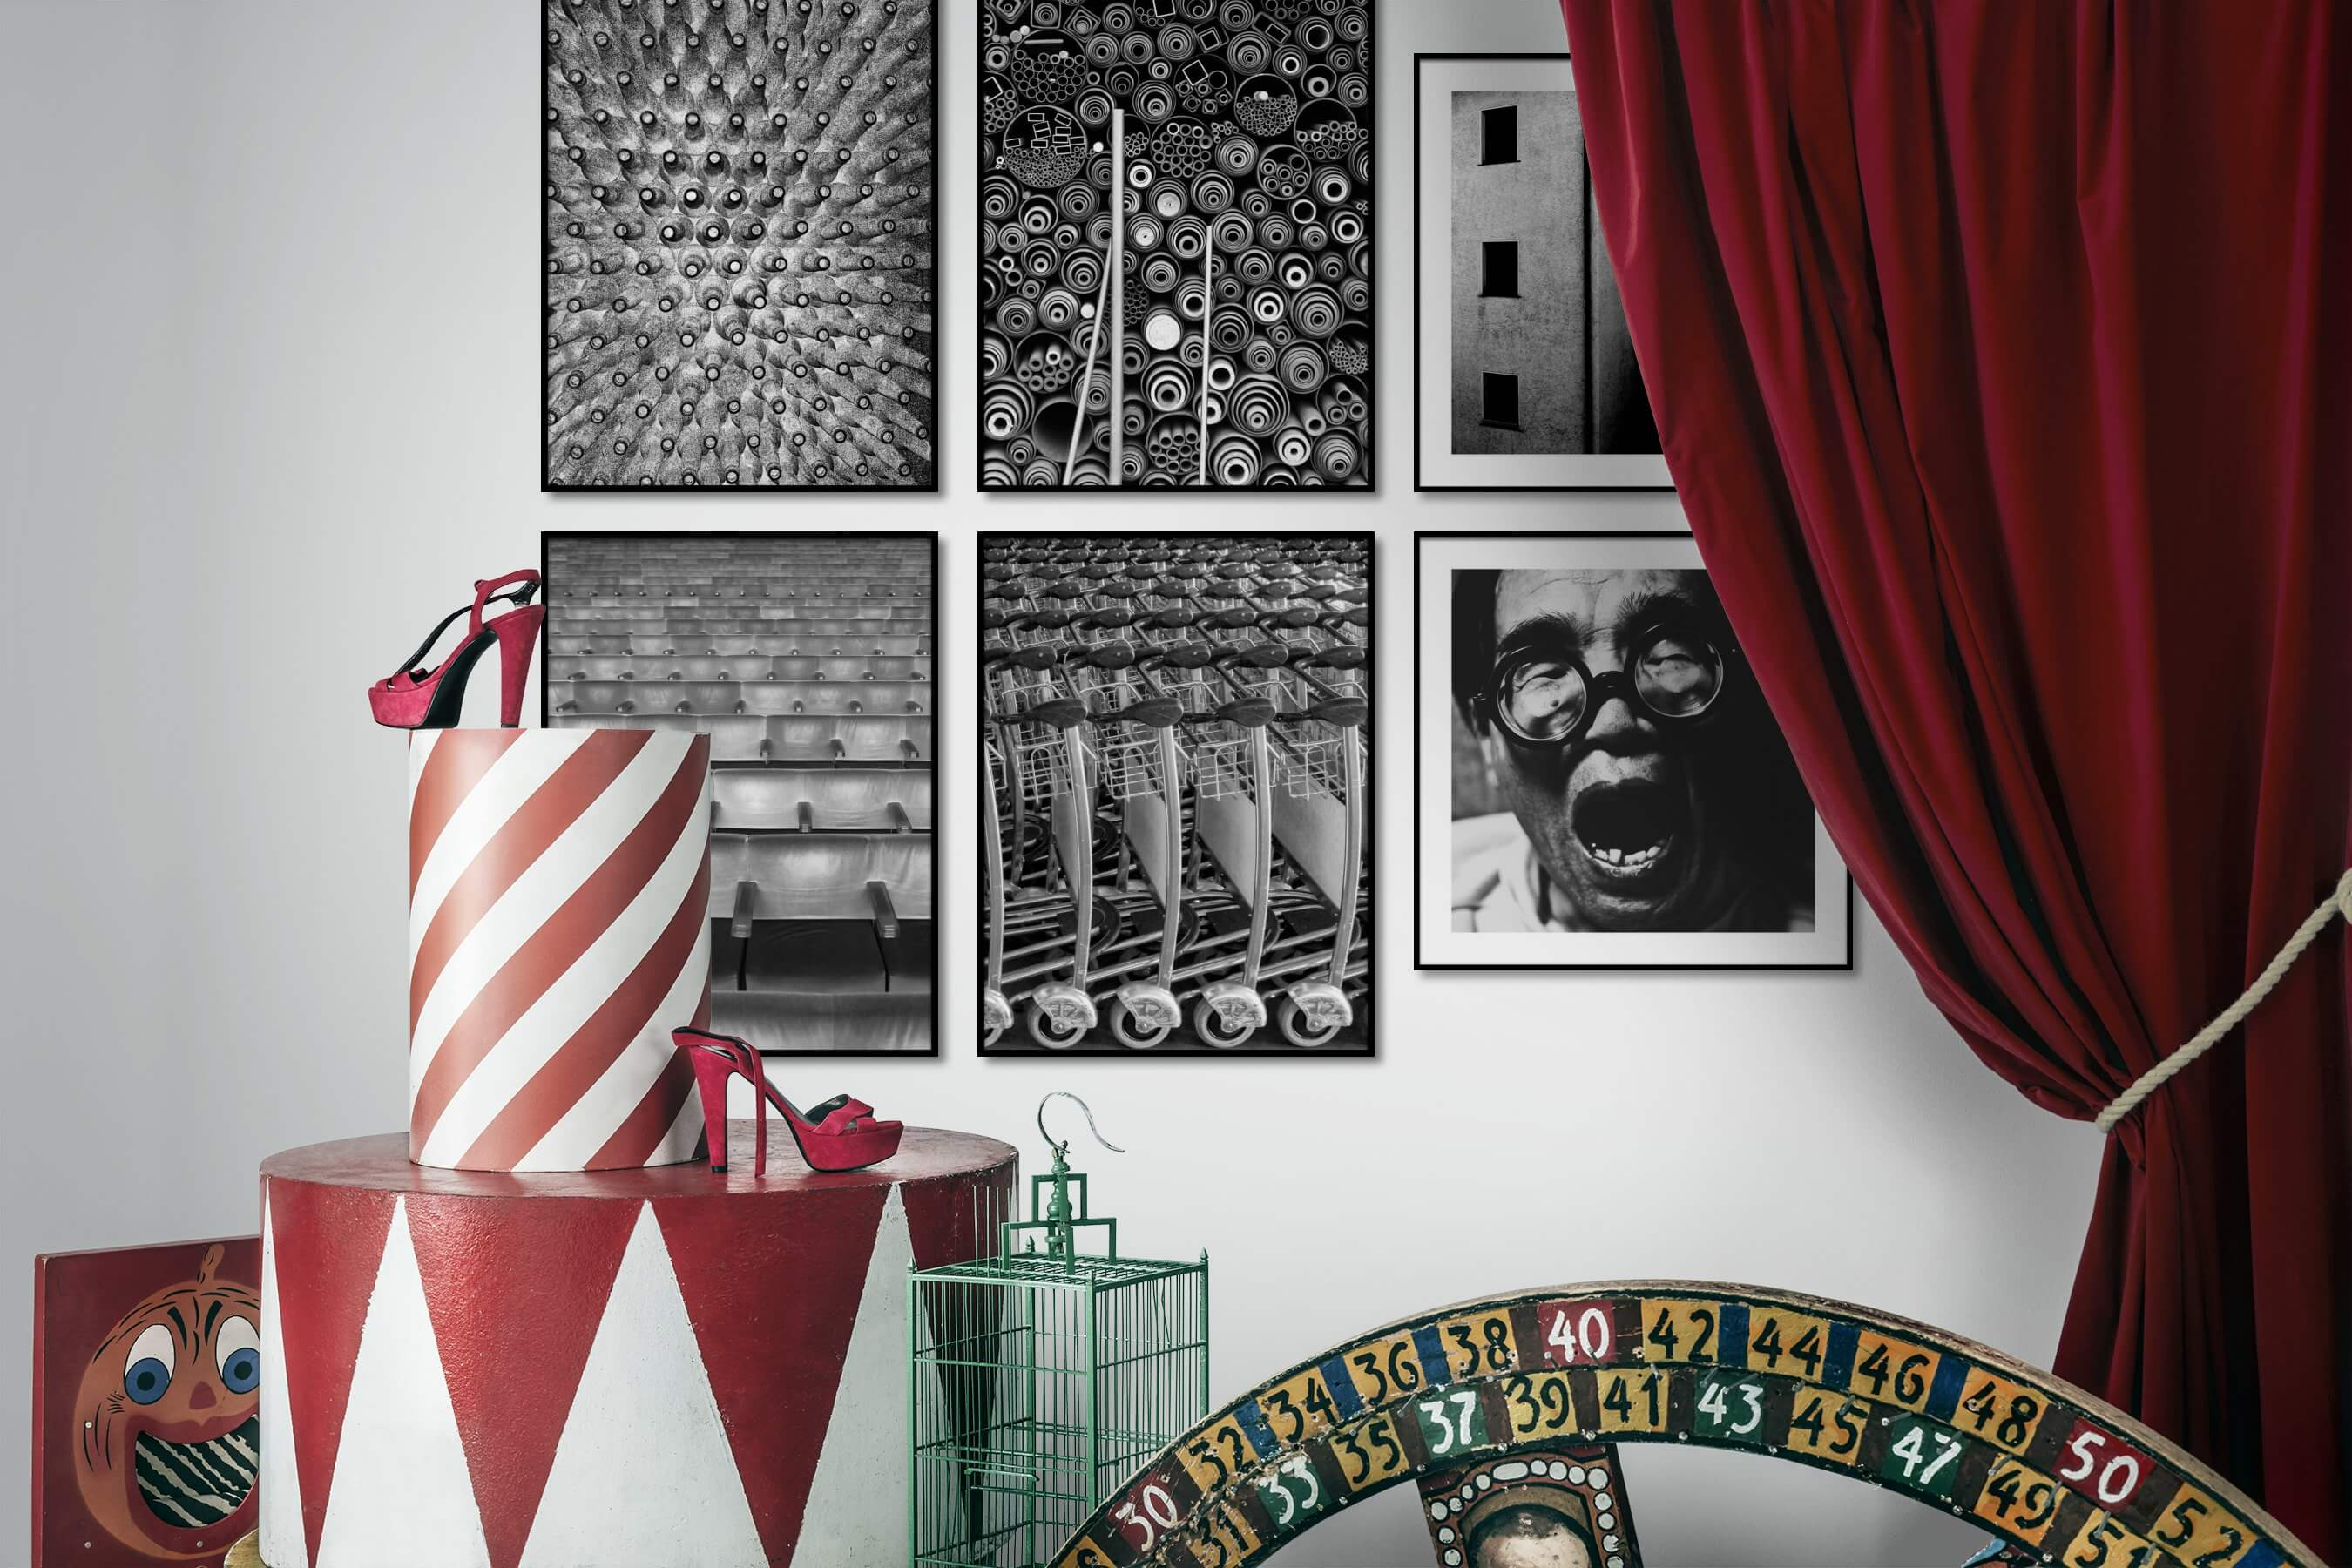 Gallery wall idea with six framed pictures arranged on a wall depicting Black & White, For the Maximalist, Vintage, For the Moderate, Artsy, and City Life